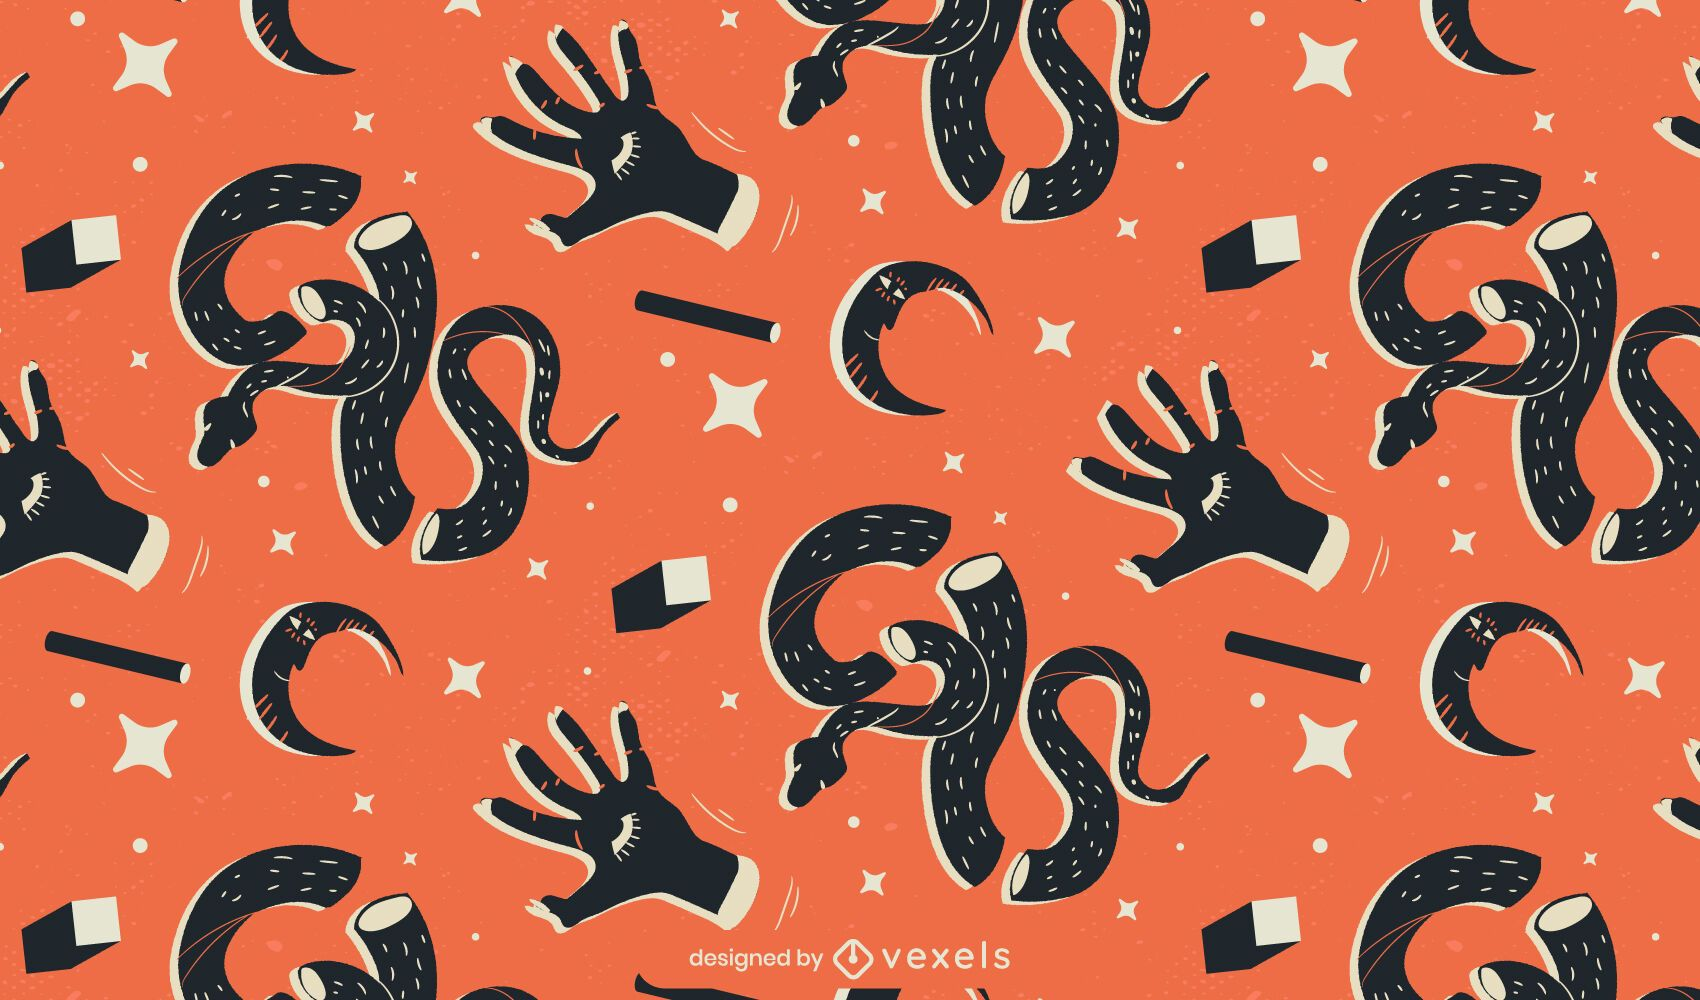 snakes and hands pattern design